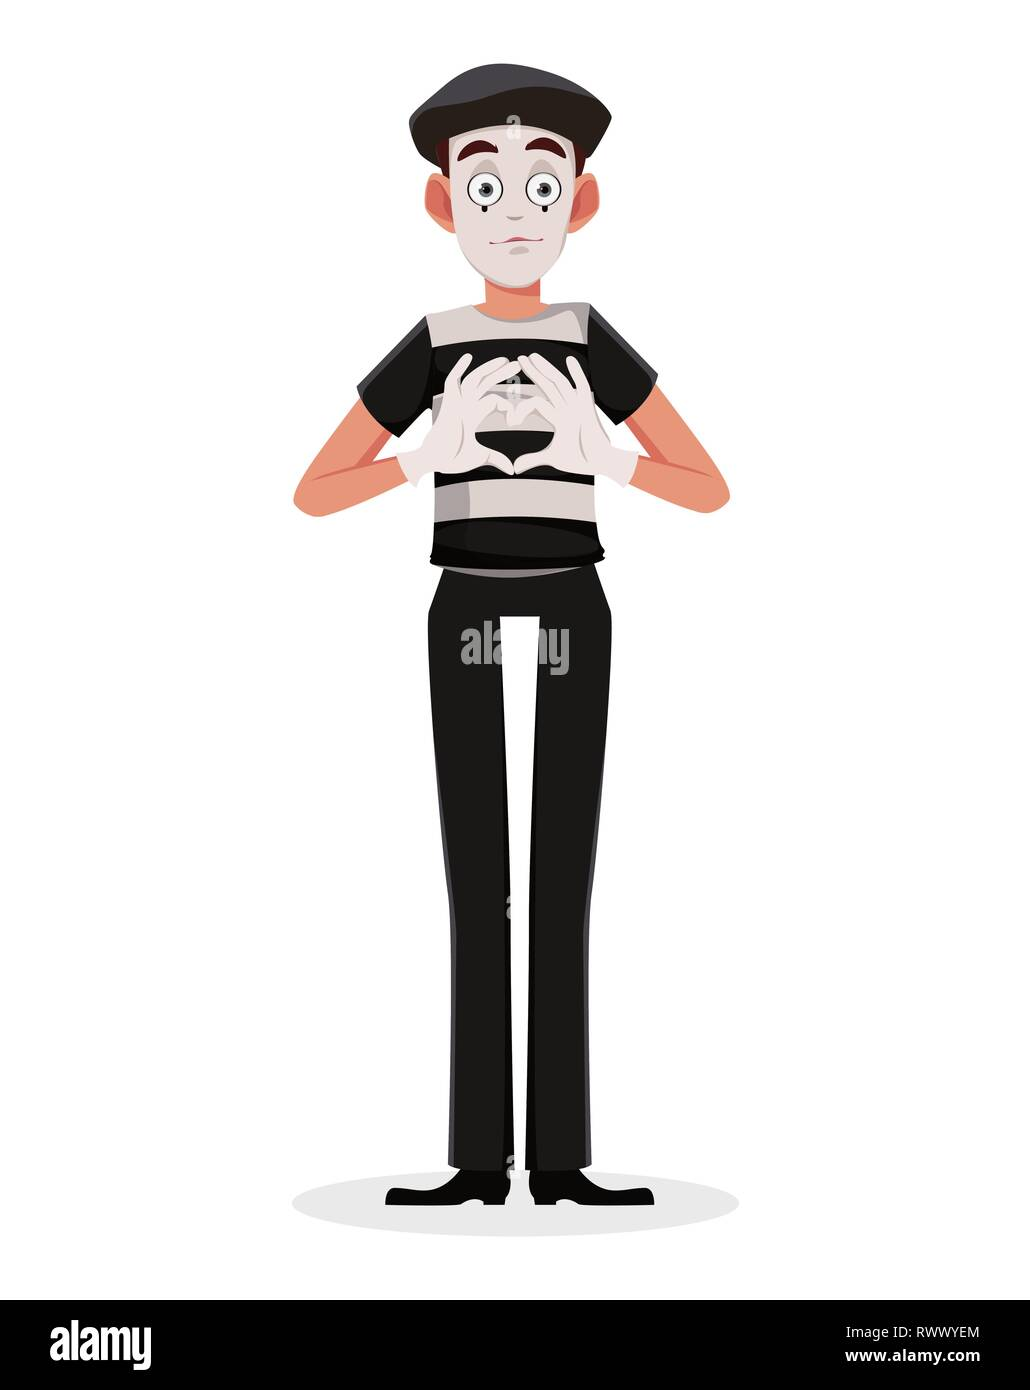 Mime cartoon character performing pantomime called Giving Heart. Flat style. Usable for April Fool's Day. Vector illustration isolated on white backgr - Stock Image